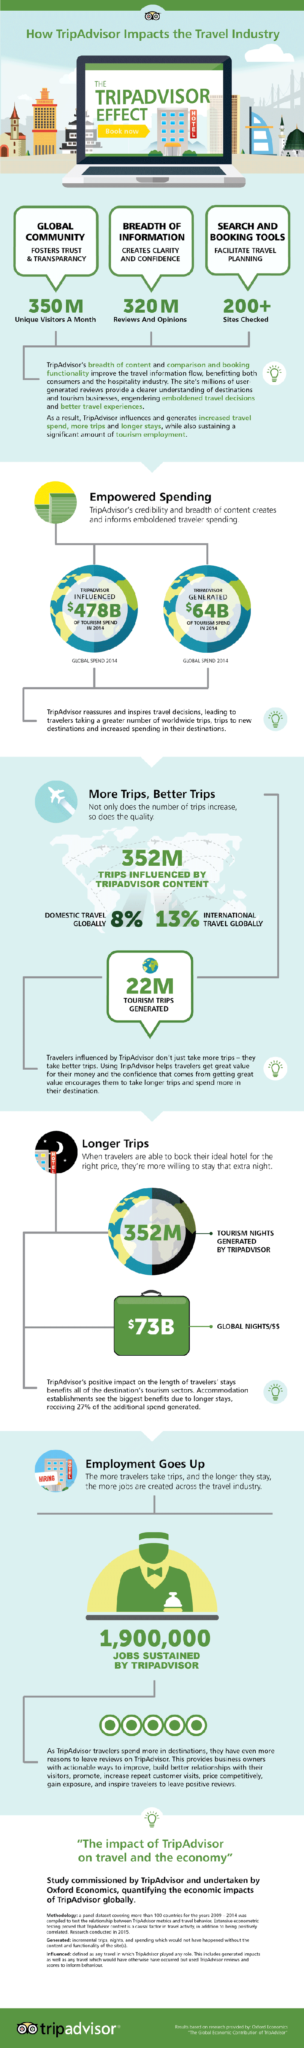 taoxford_econtourism_infographic_global_2016